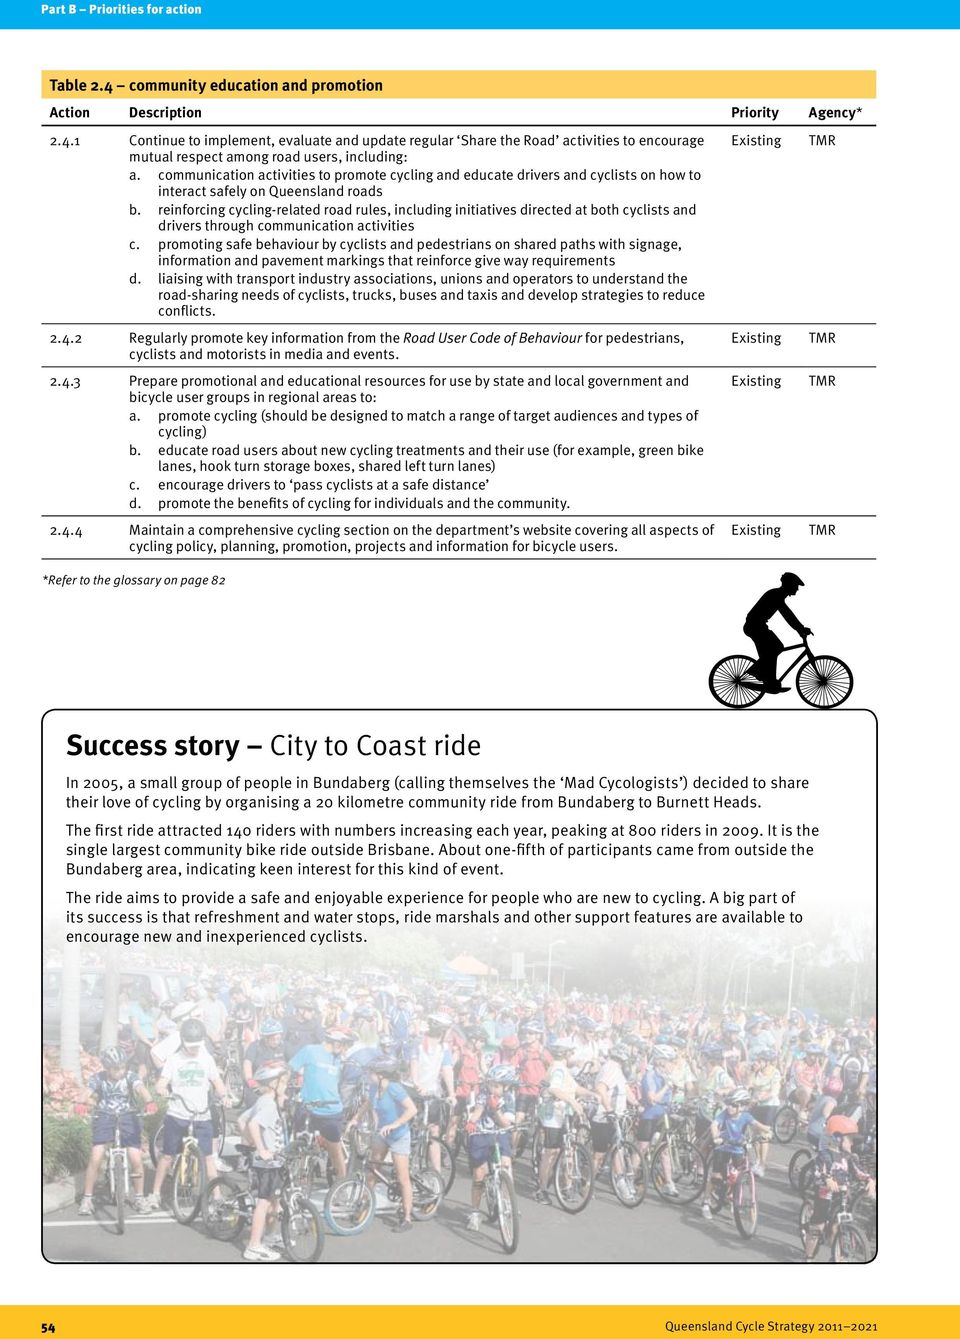 reinforcing cycling-related road rules, including initiatives directed at both cyclists and drivers through communication activities c.